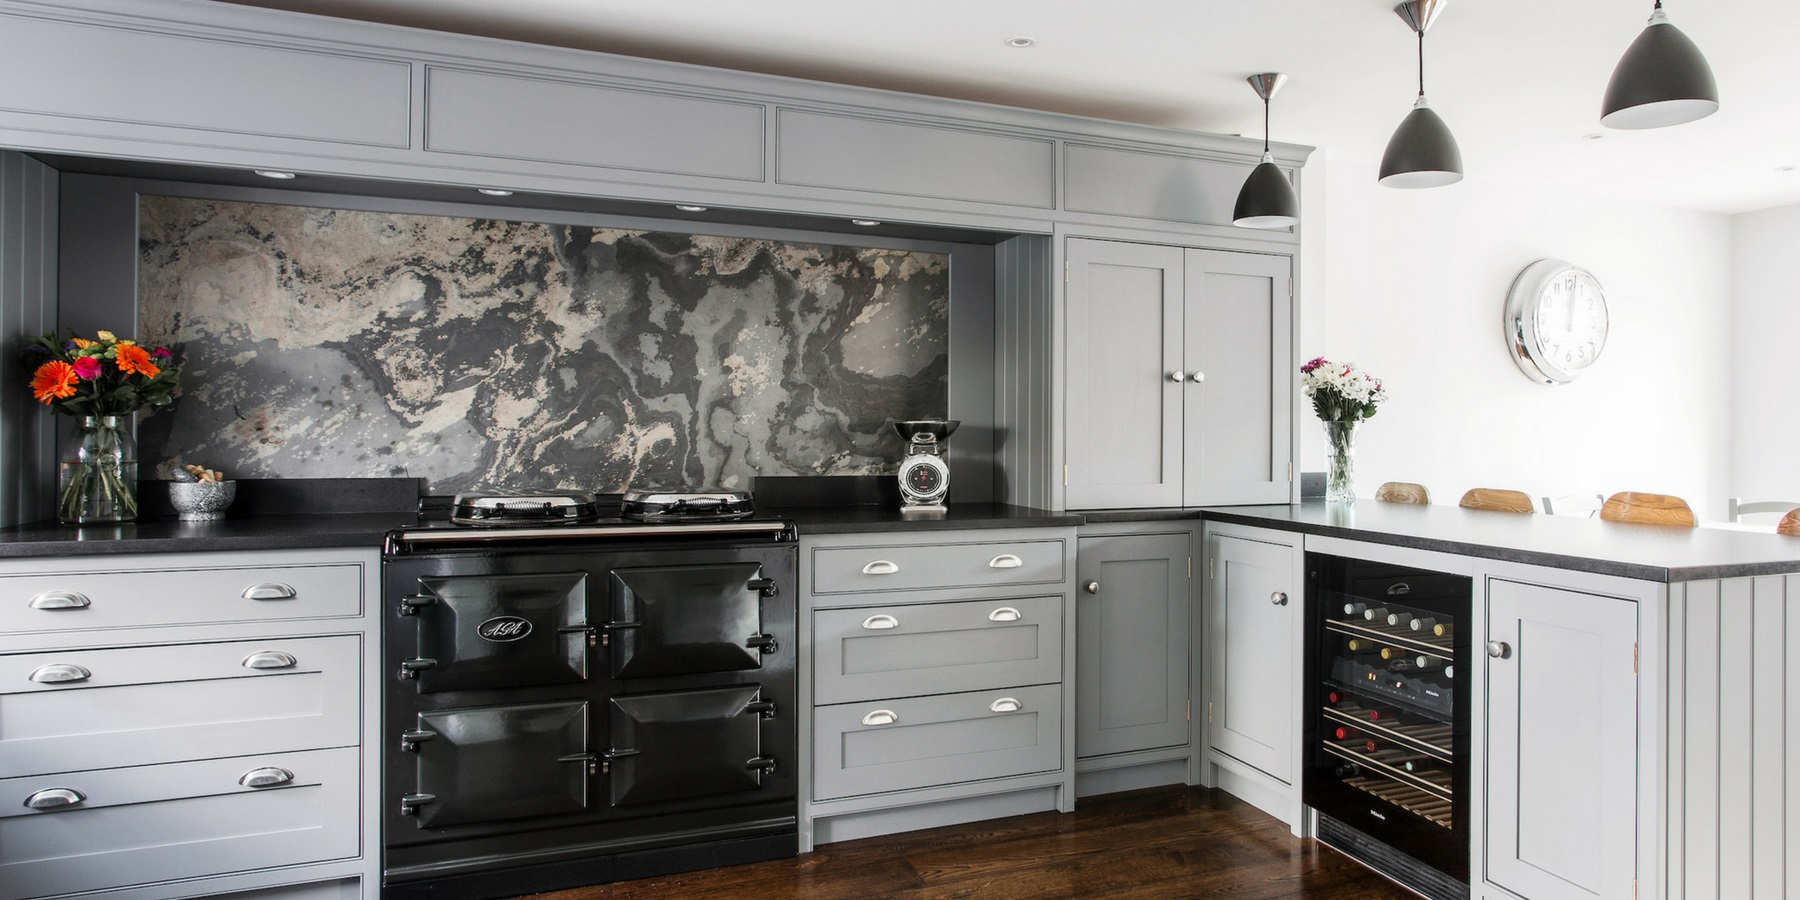 Bespoke Grey Luxury Shaker Kitchen - Burlanes handmade Wellsdown grey kitchen with black worktops, classic AGA Range and marble splashback.